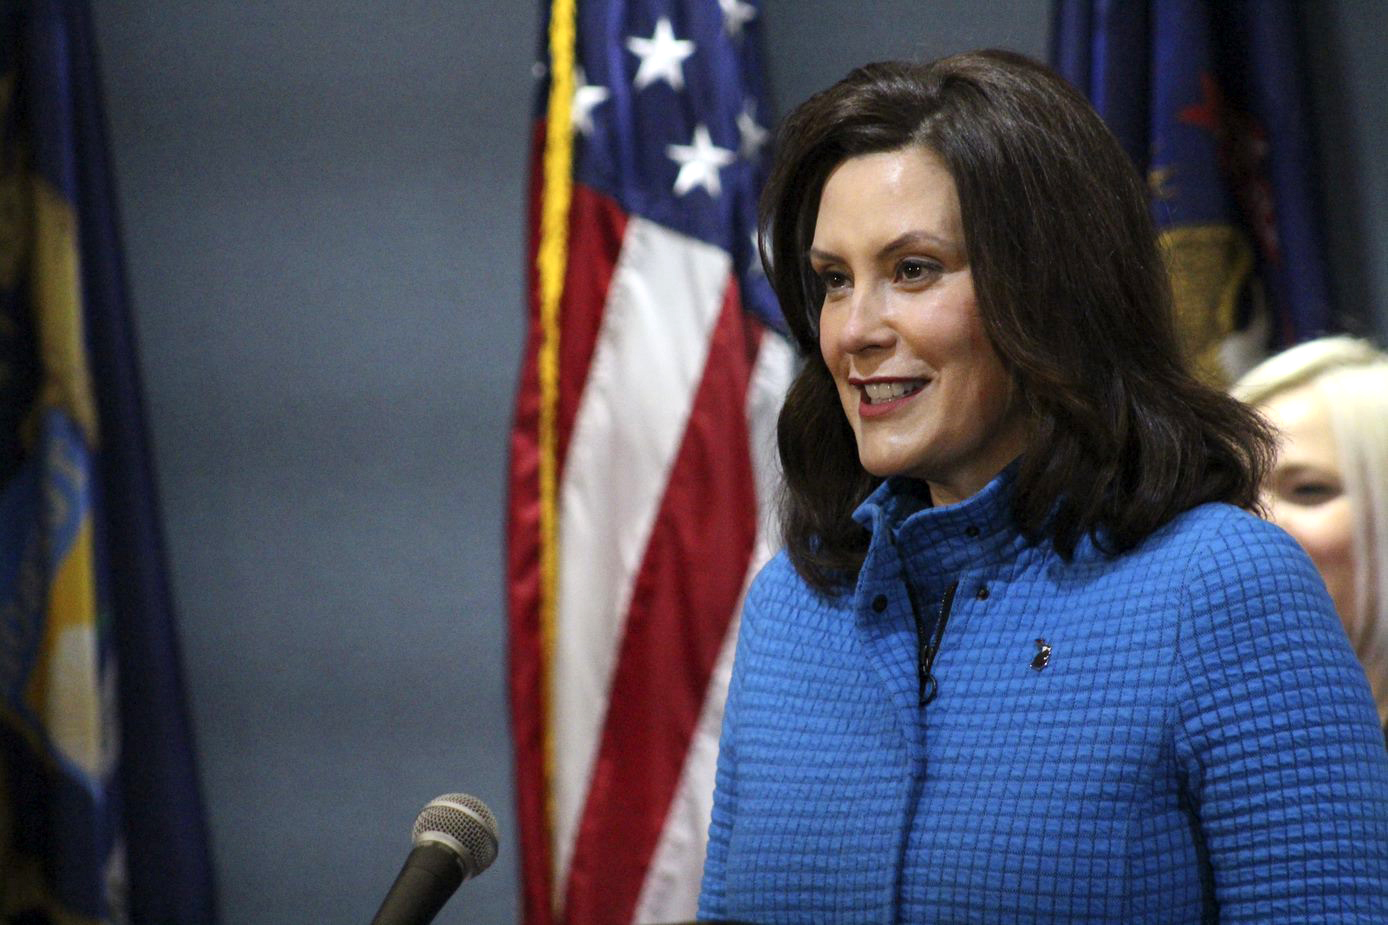 Gatherings Of 10 Or Less Retail By Appointment Allowed Under New Whitmer Order Mlive Com